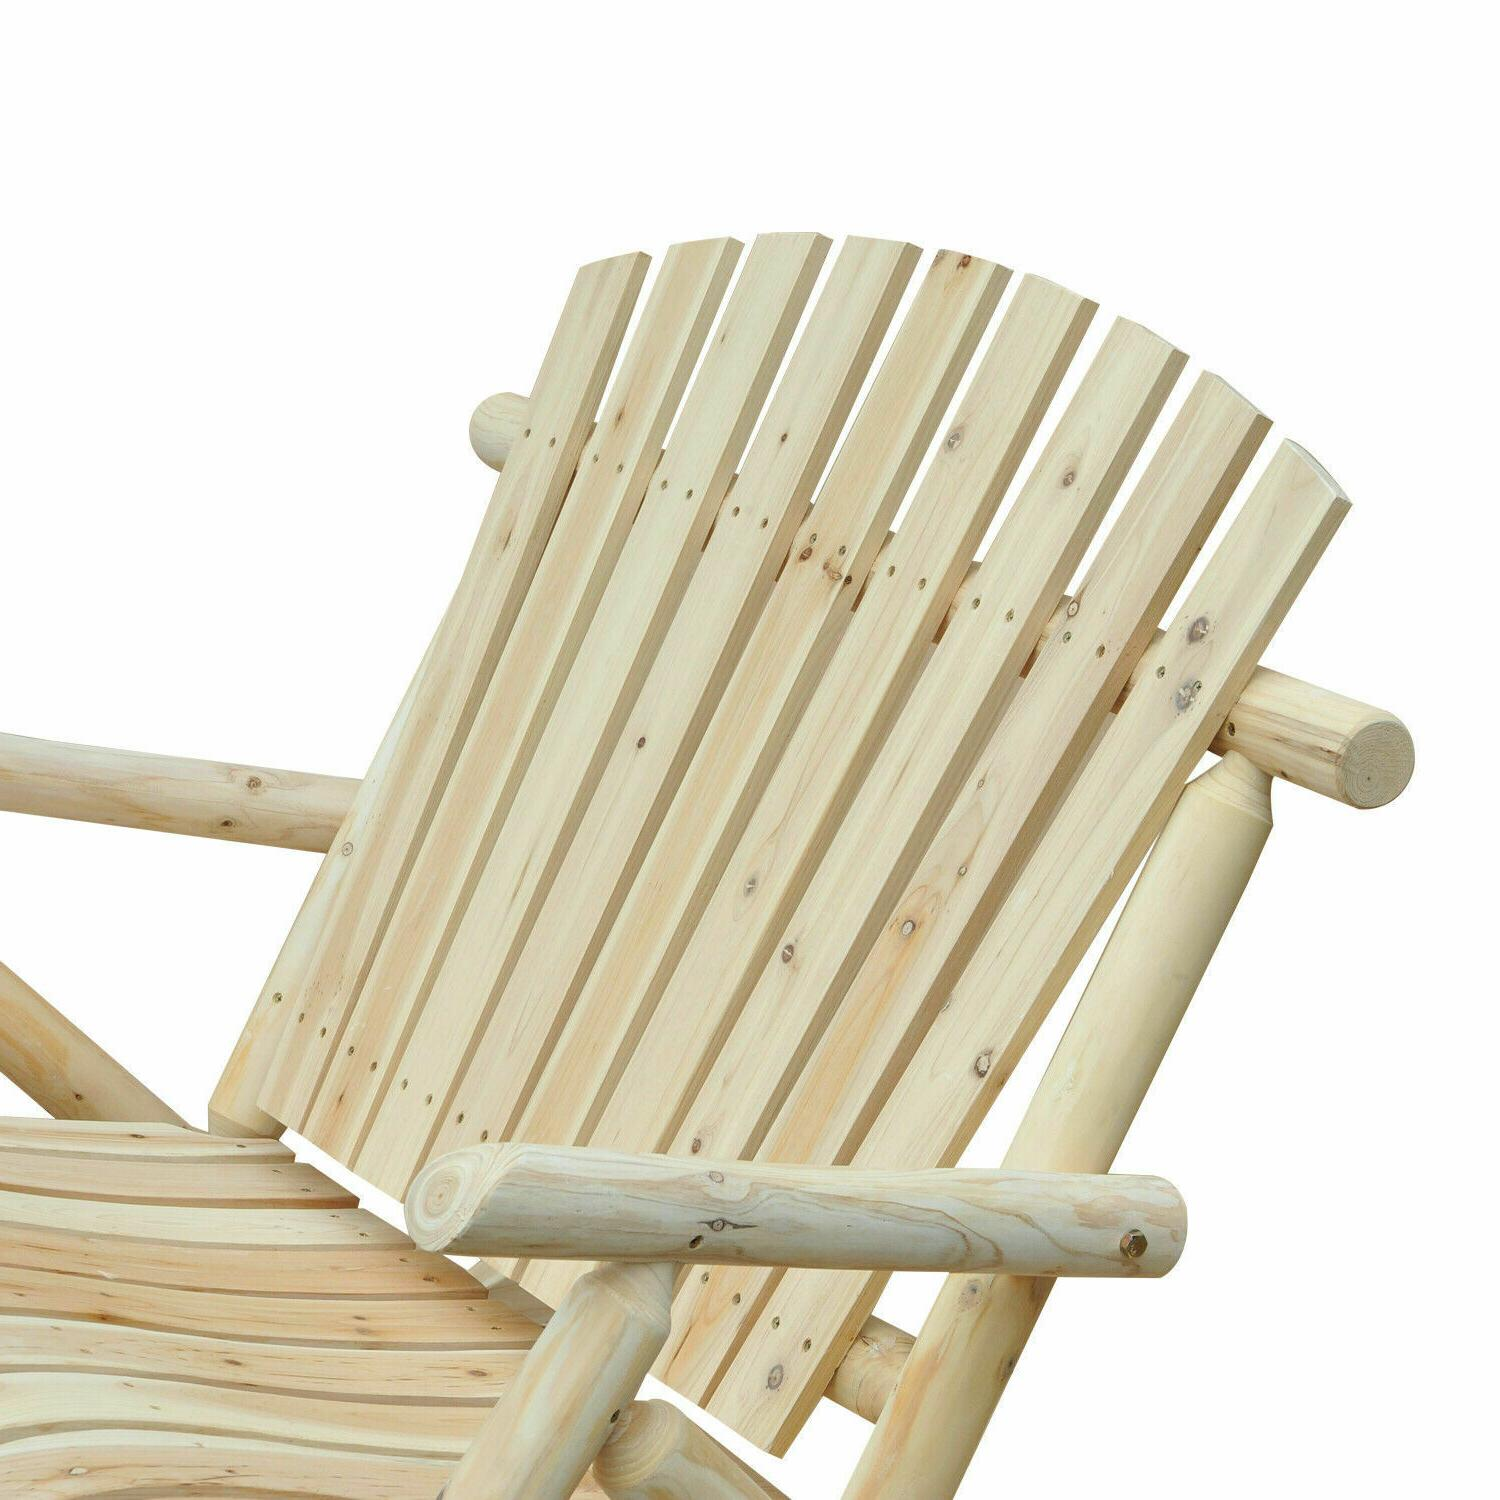 2 Person Chair Patio Furniture Loveseat Wooden